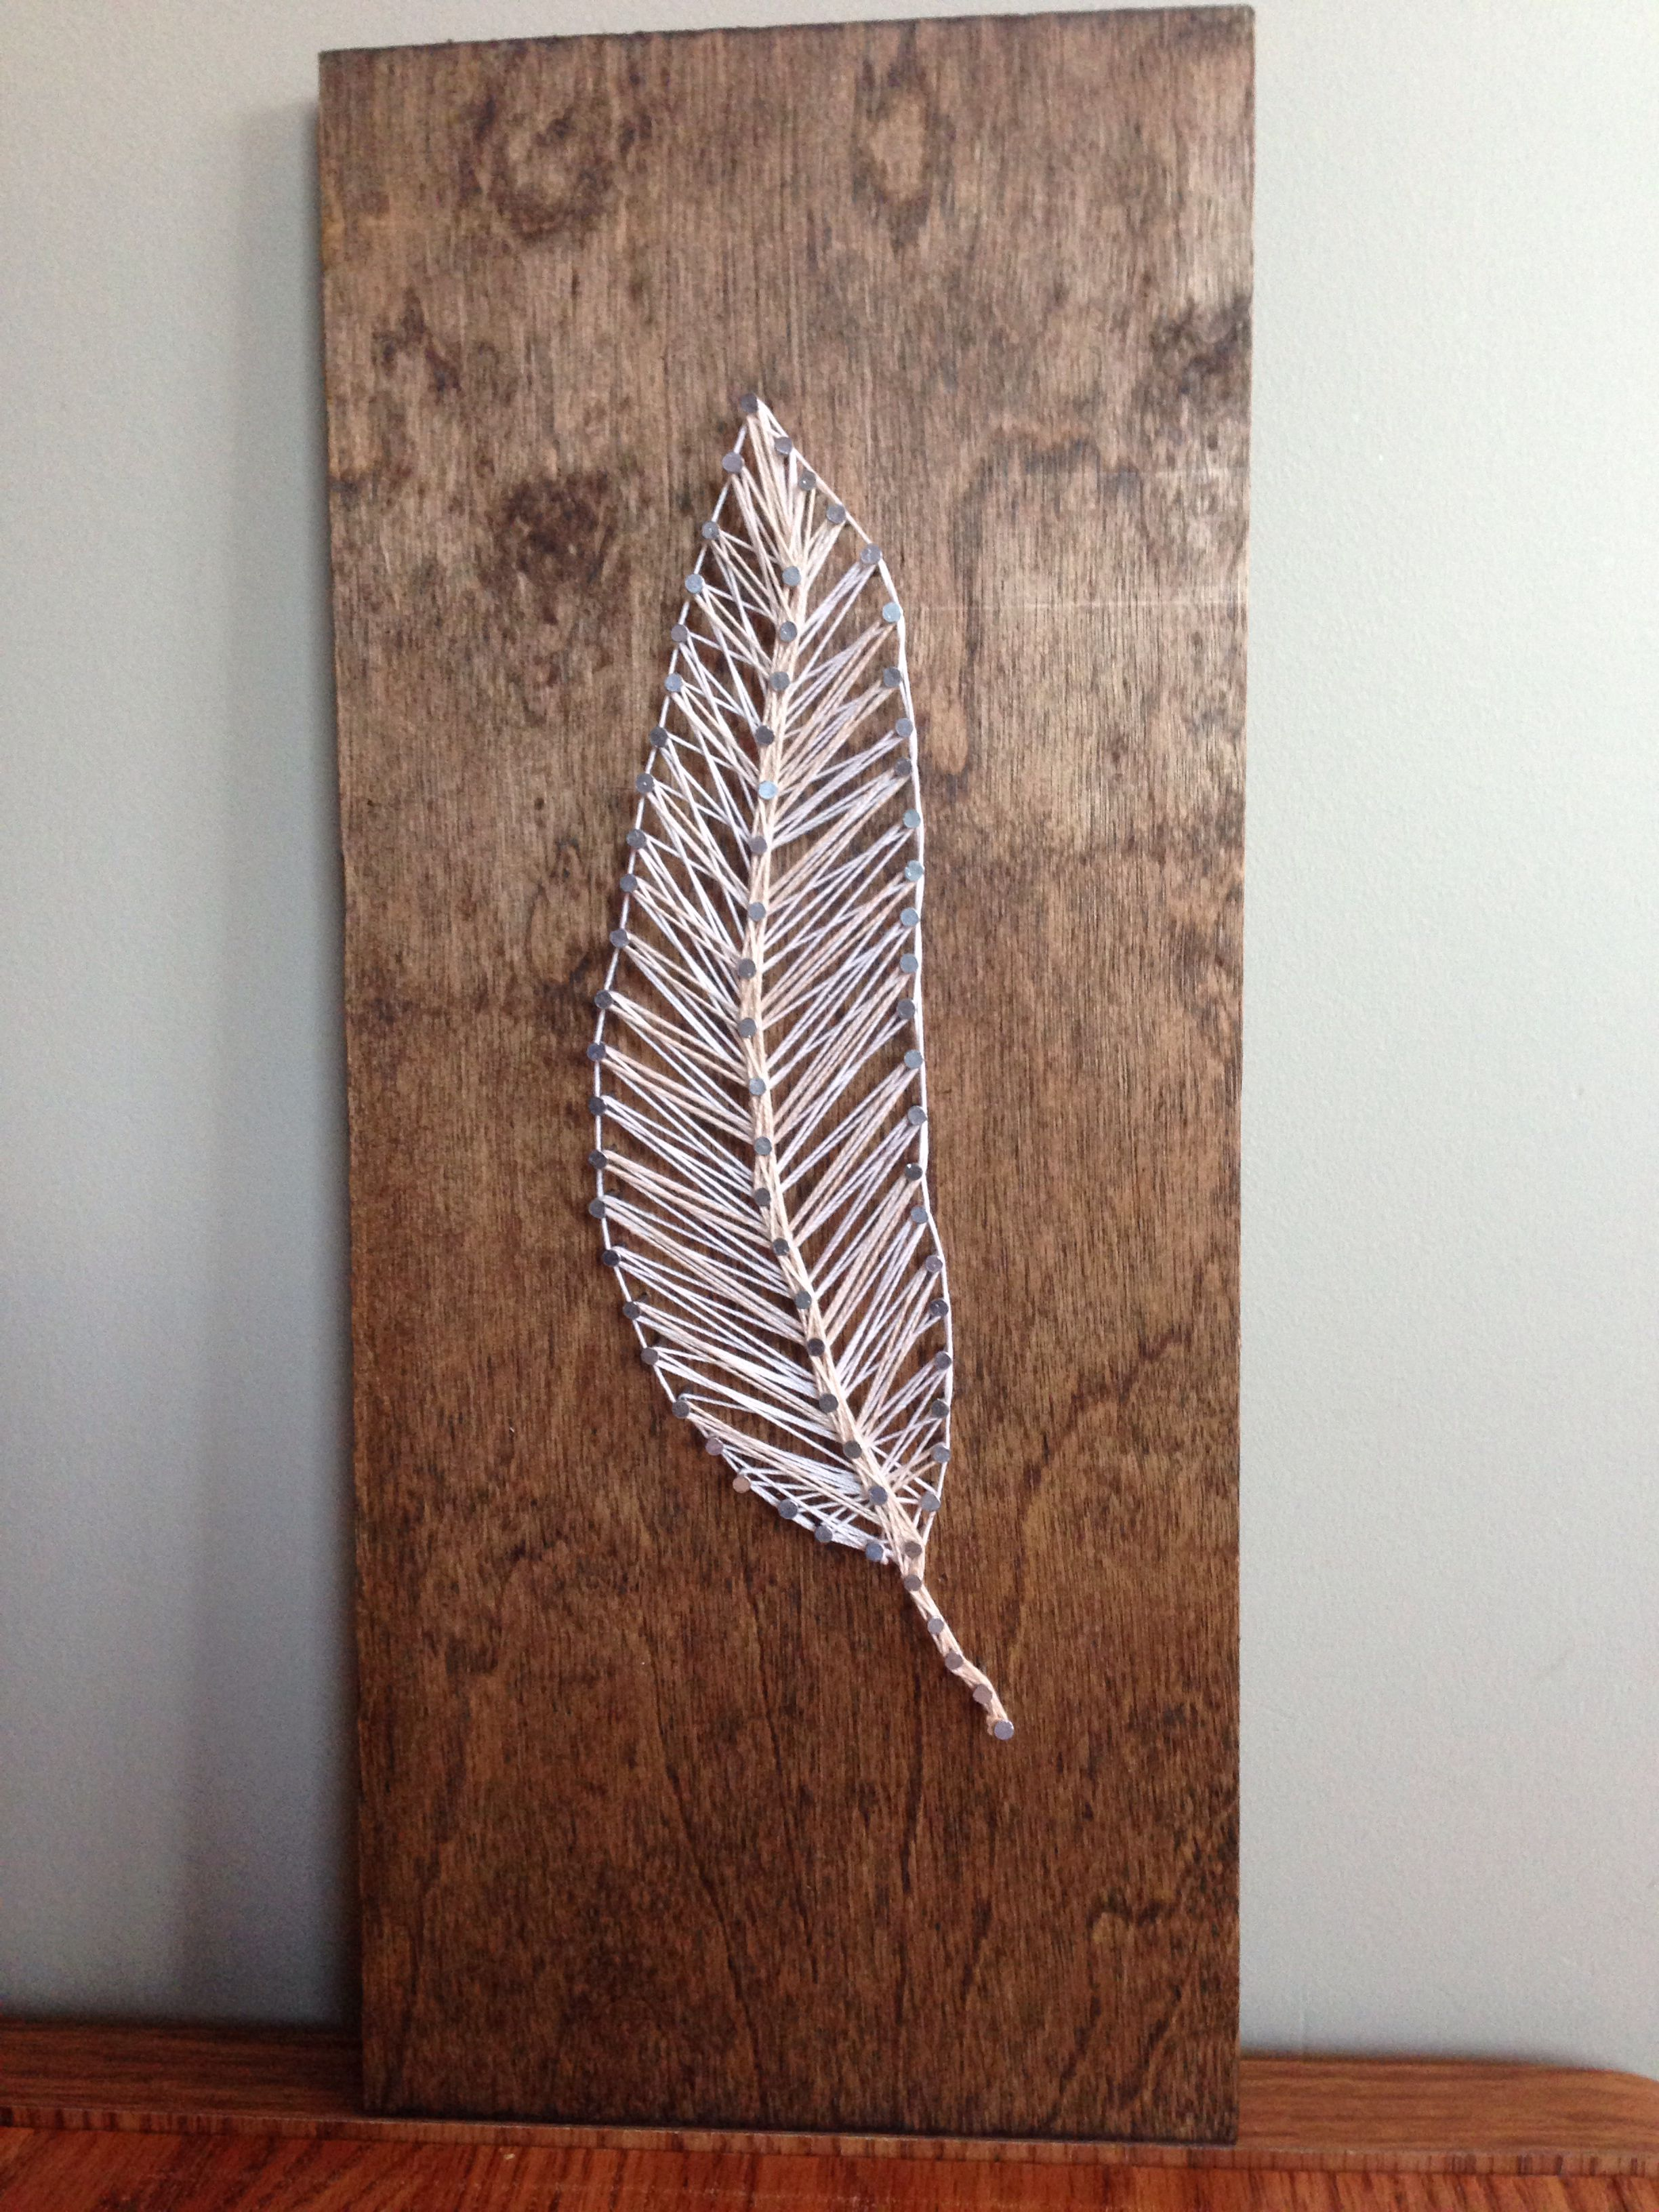 Make,Feather string art | CRAFTS | Pinterest | String art, Feathers ...